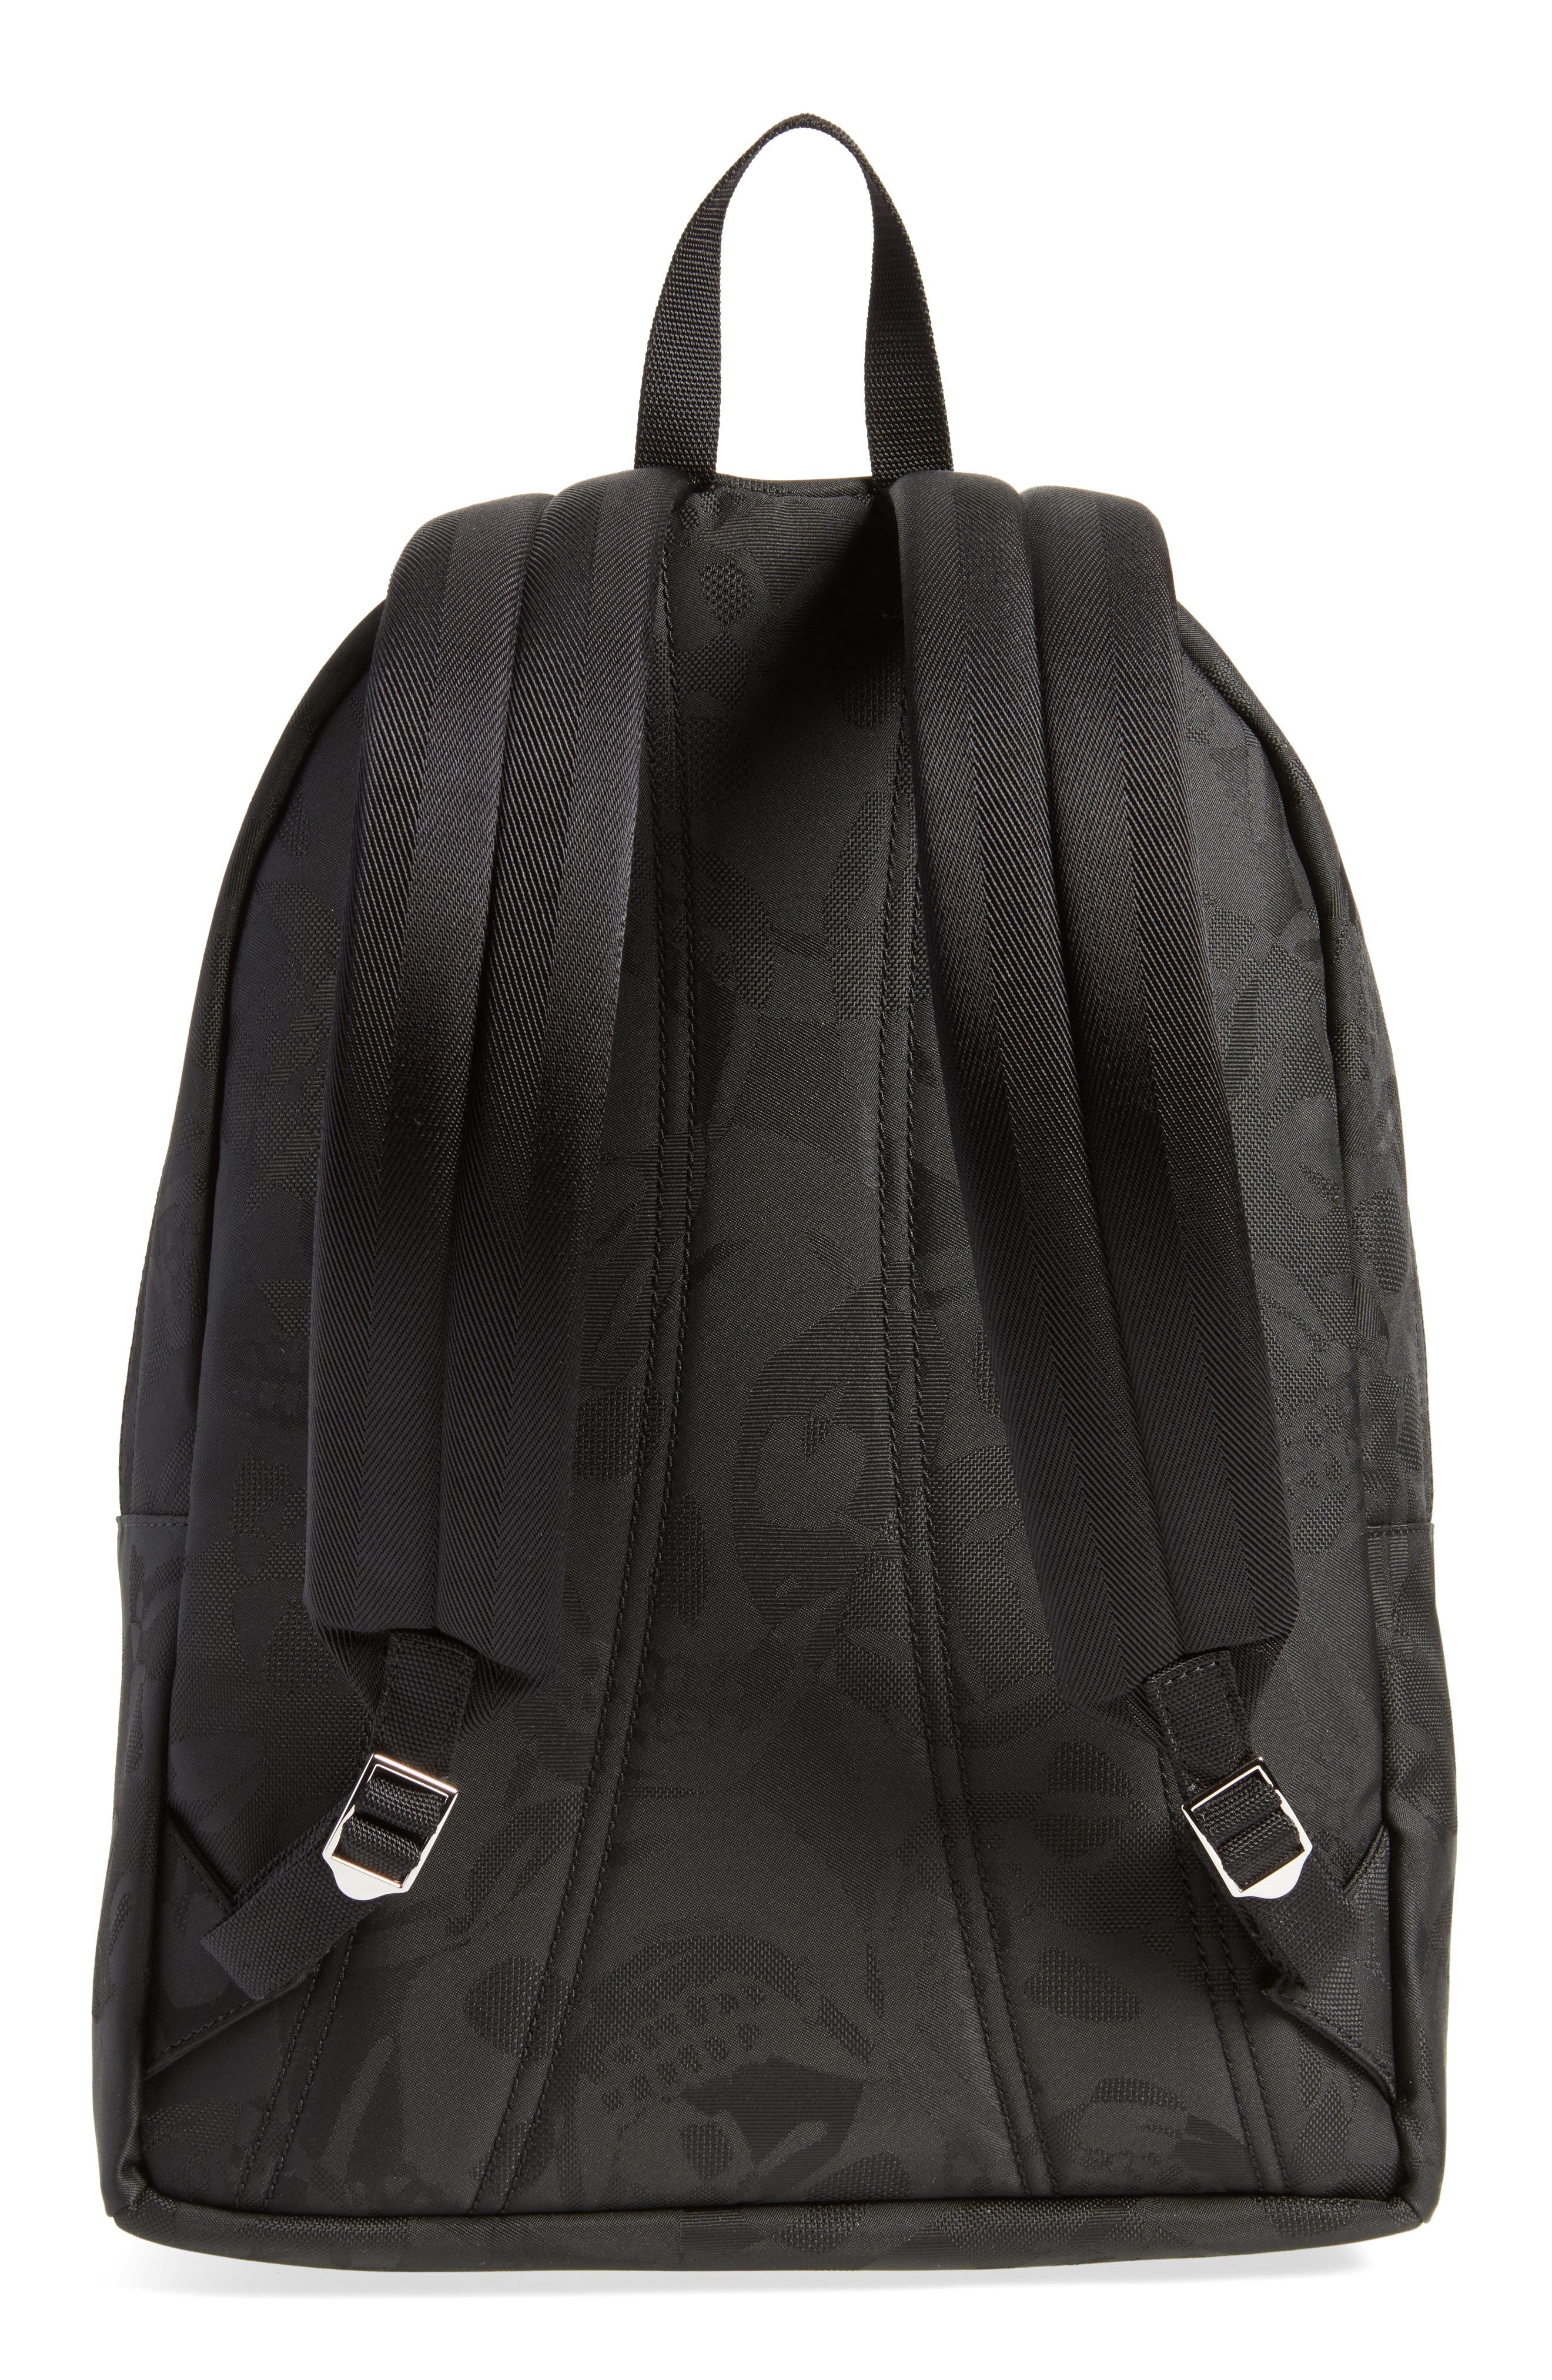 Small Backpack,                             Alternate thumbnail 3, color,                             001